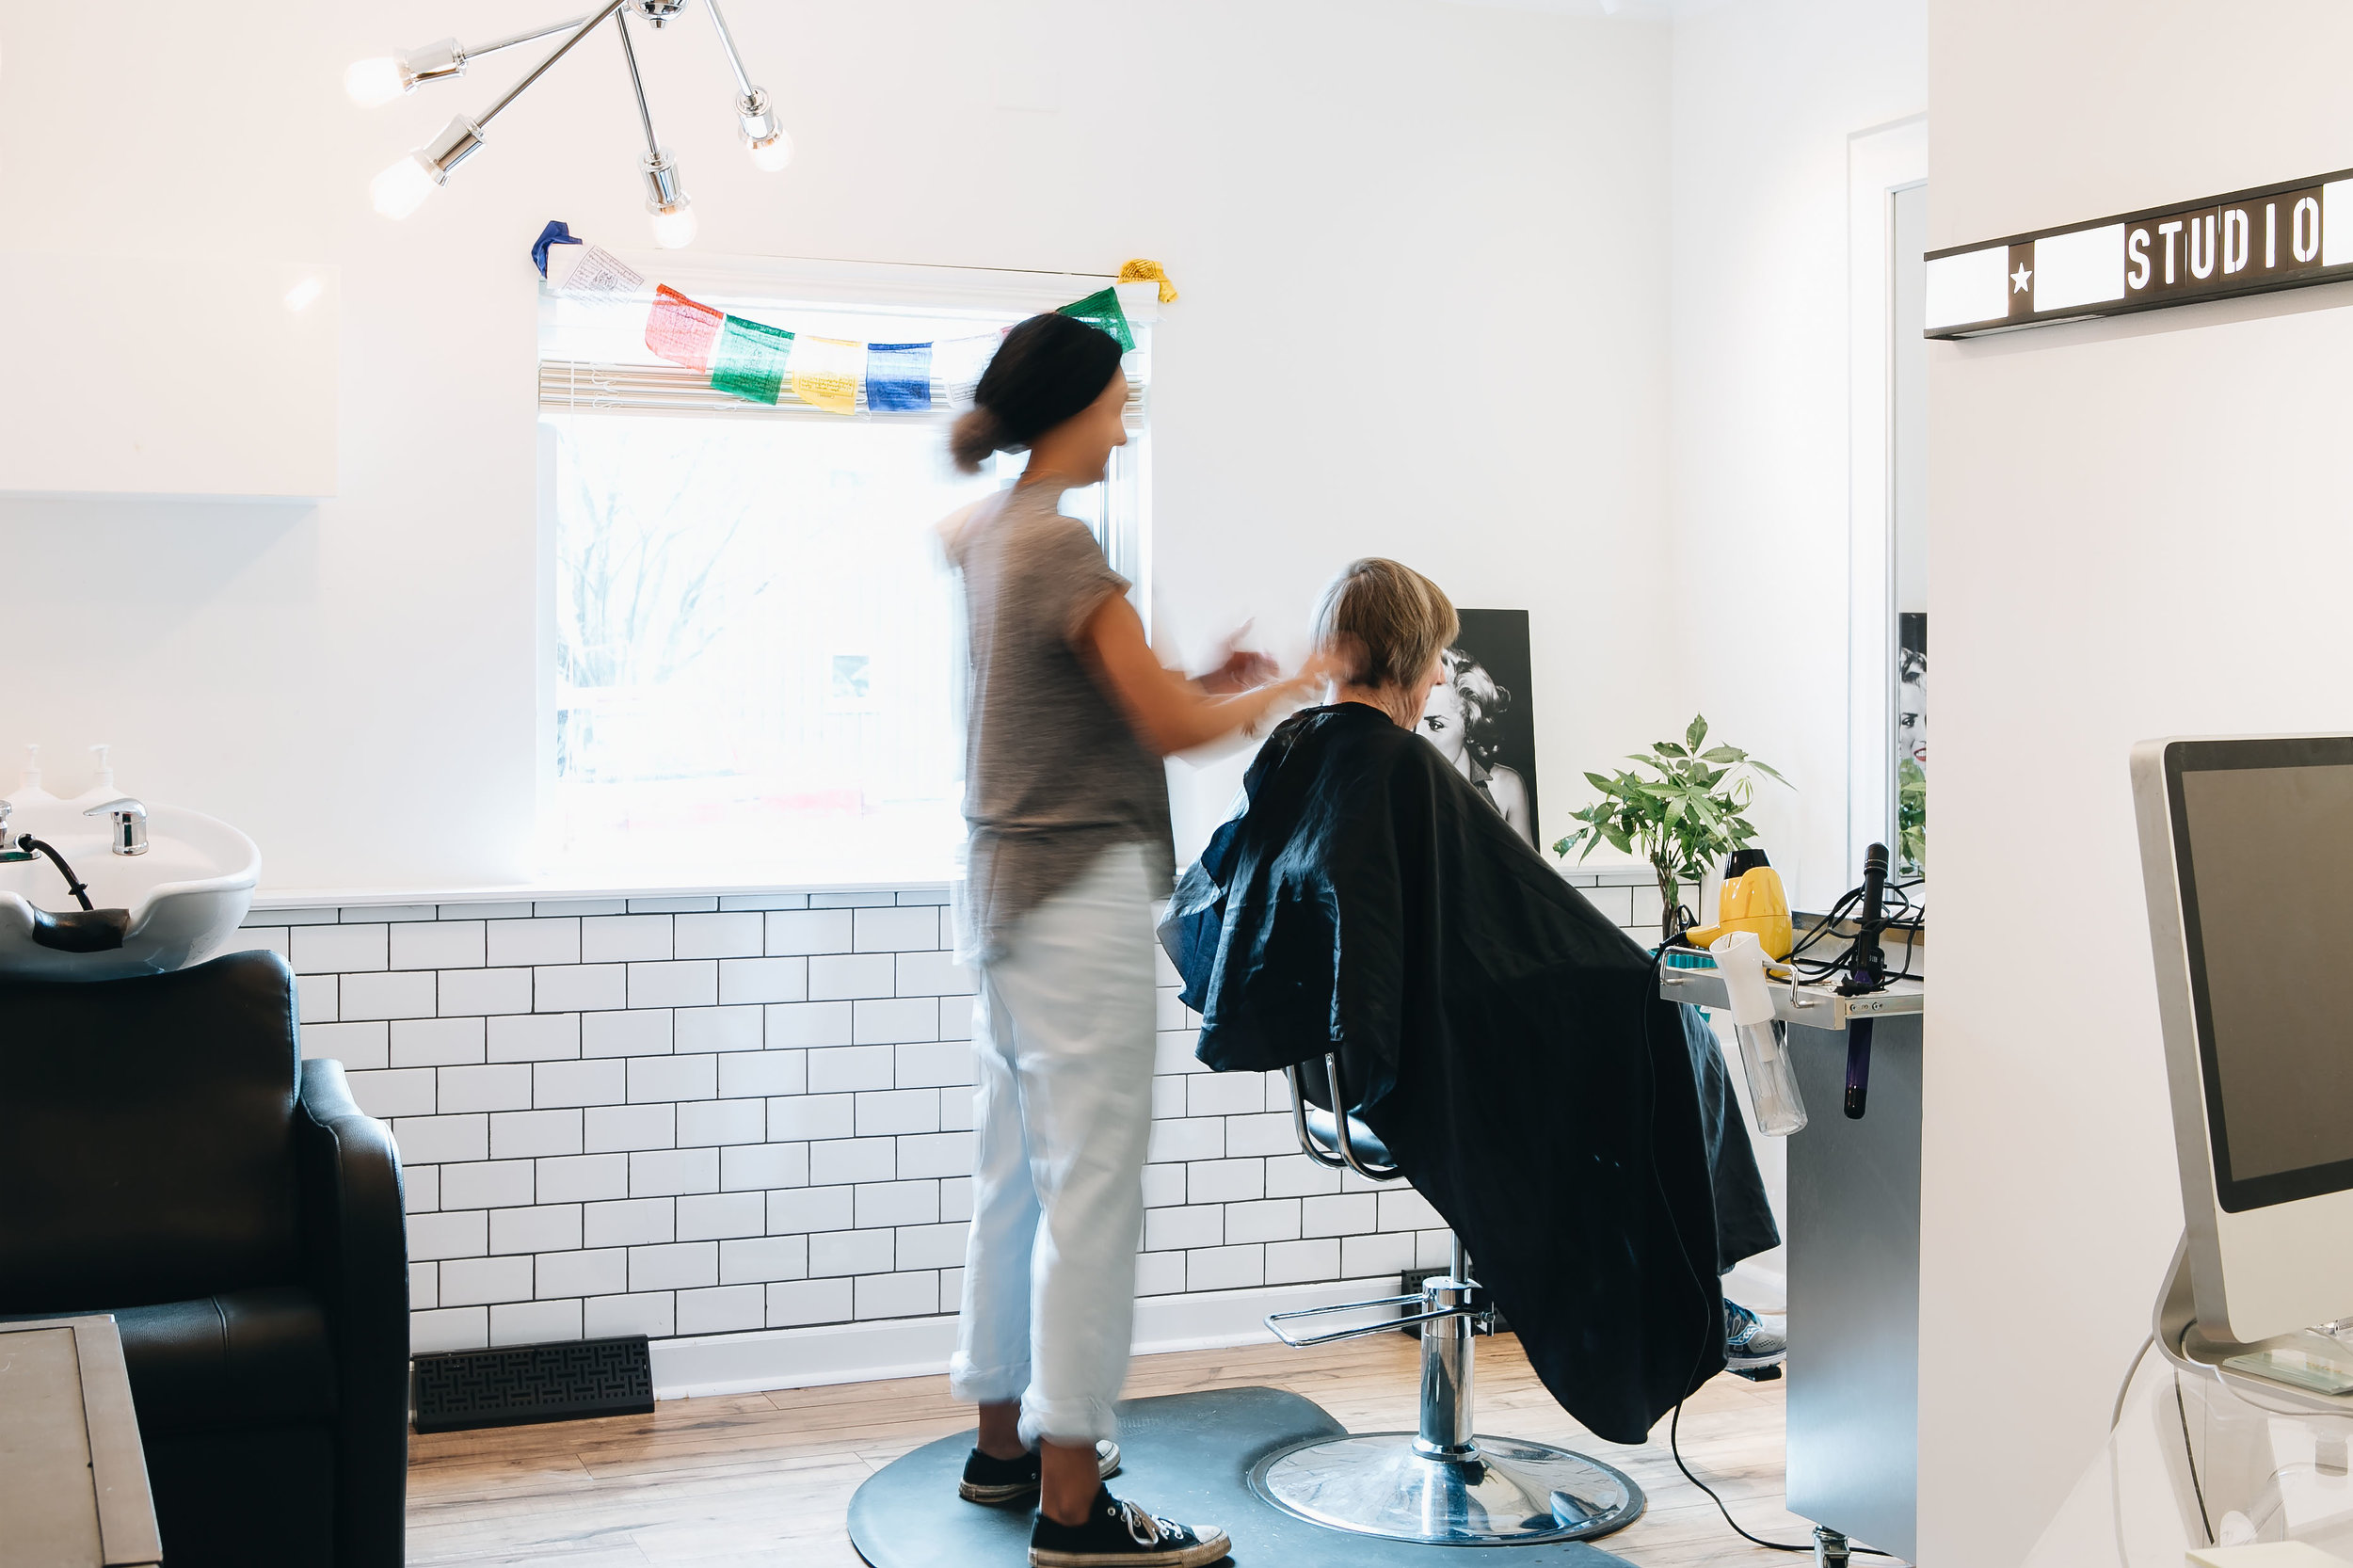 The hair hustle is real with leah of studio 36